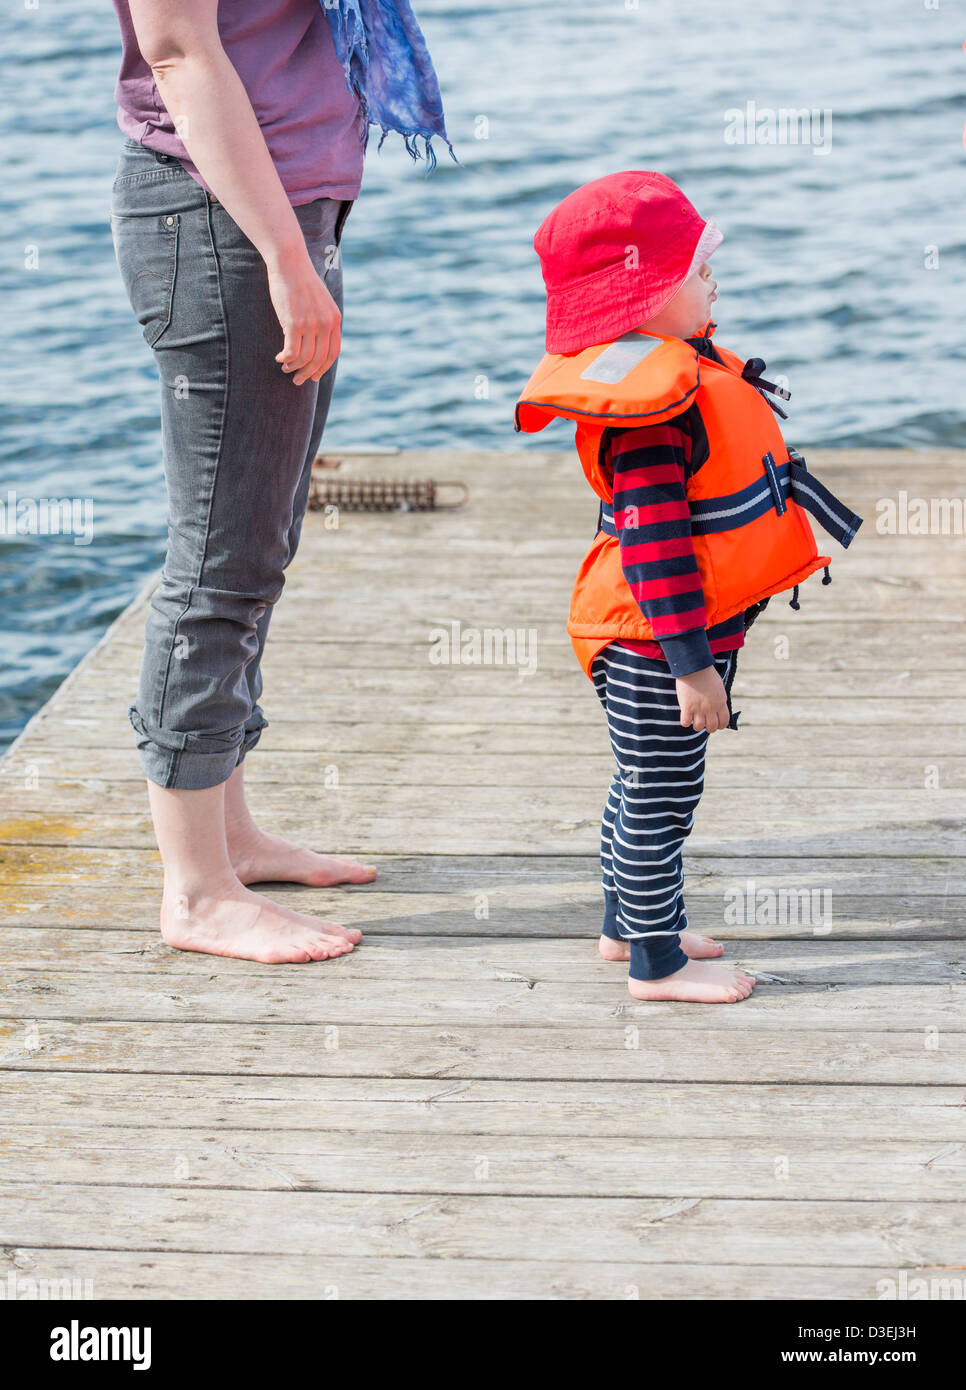 Adult caucasian woman standing barefoot next to her young child on a wooden jetty by the sea Stock Photo